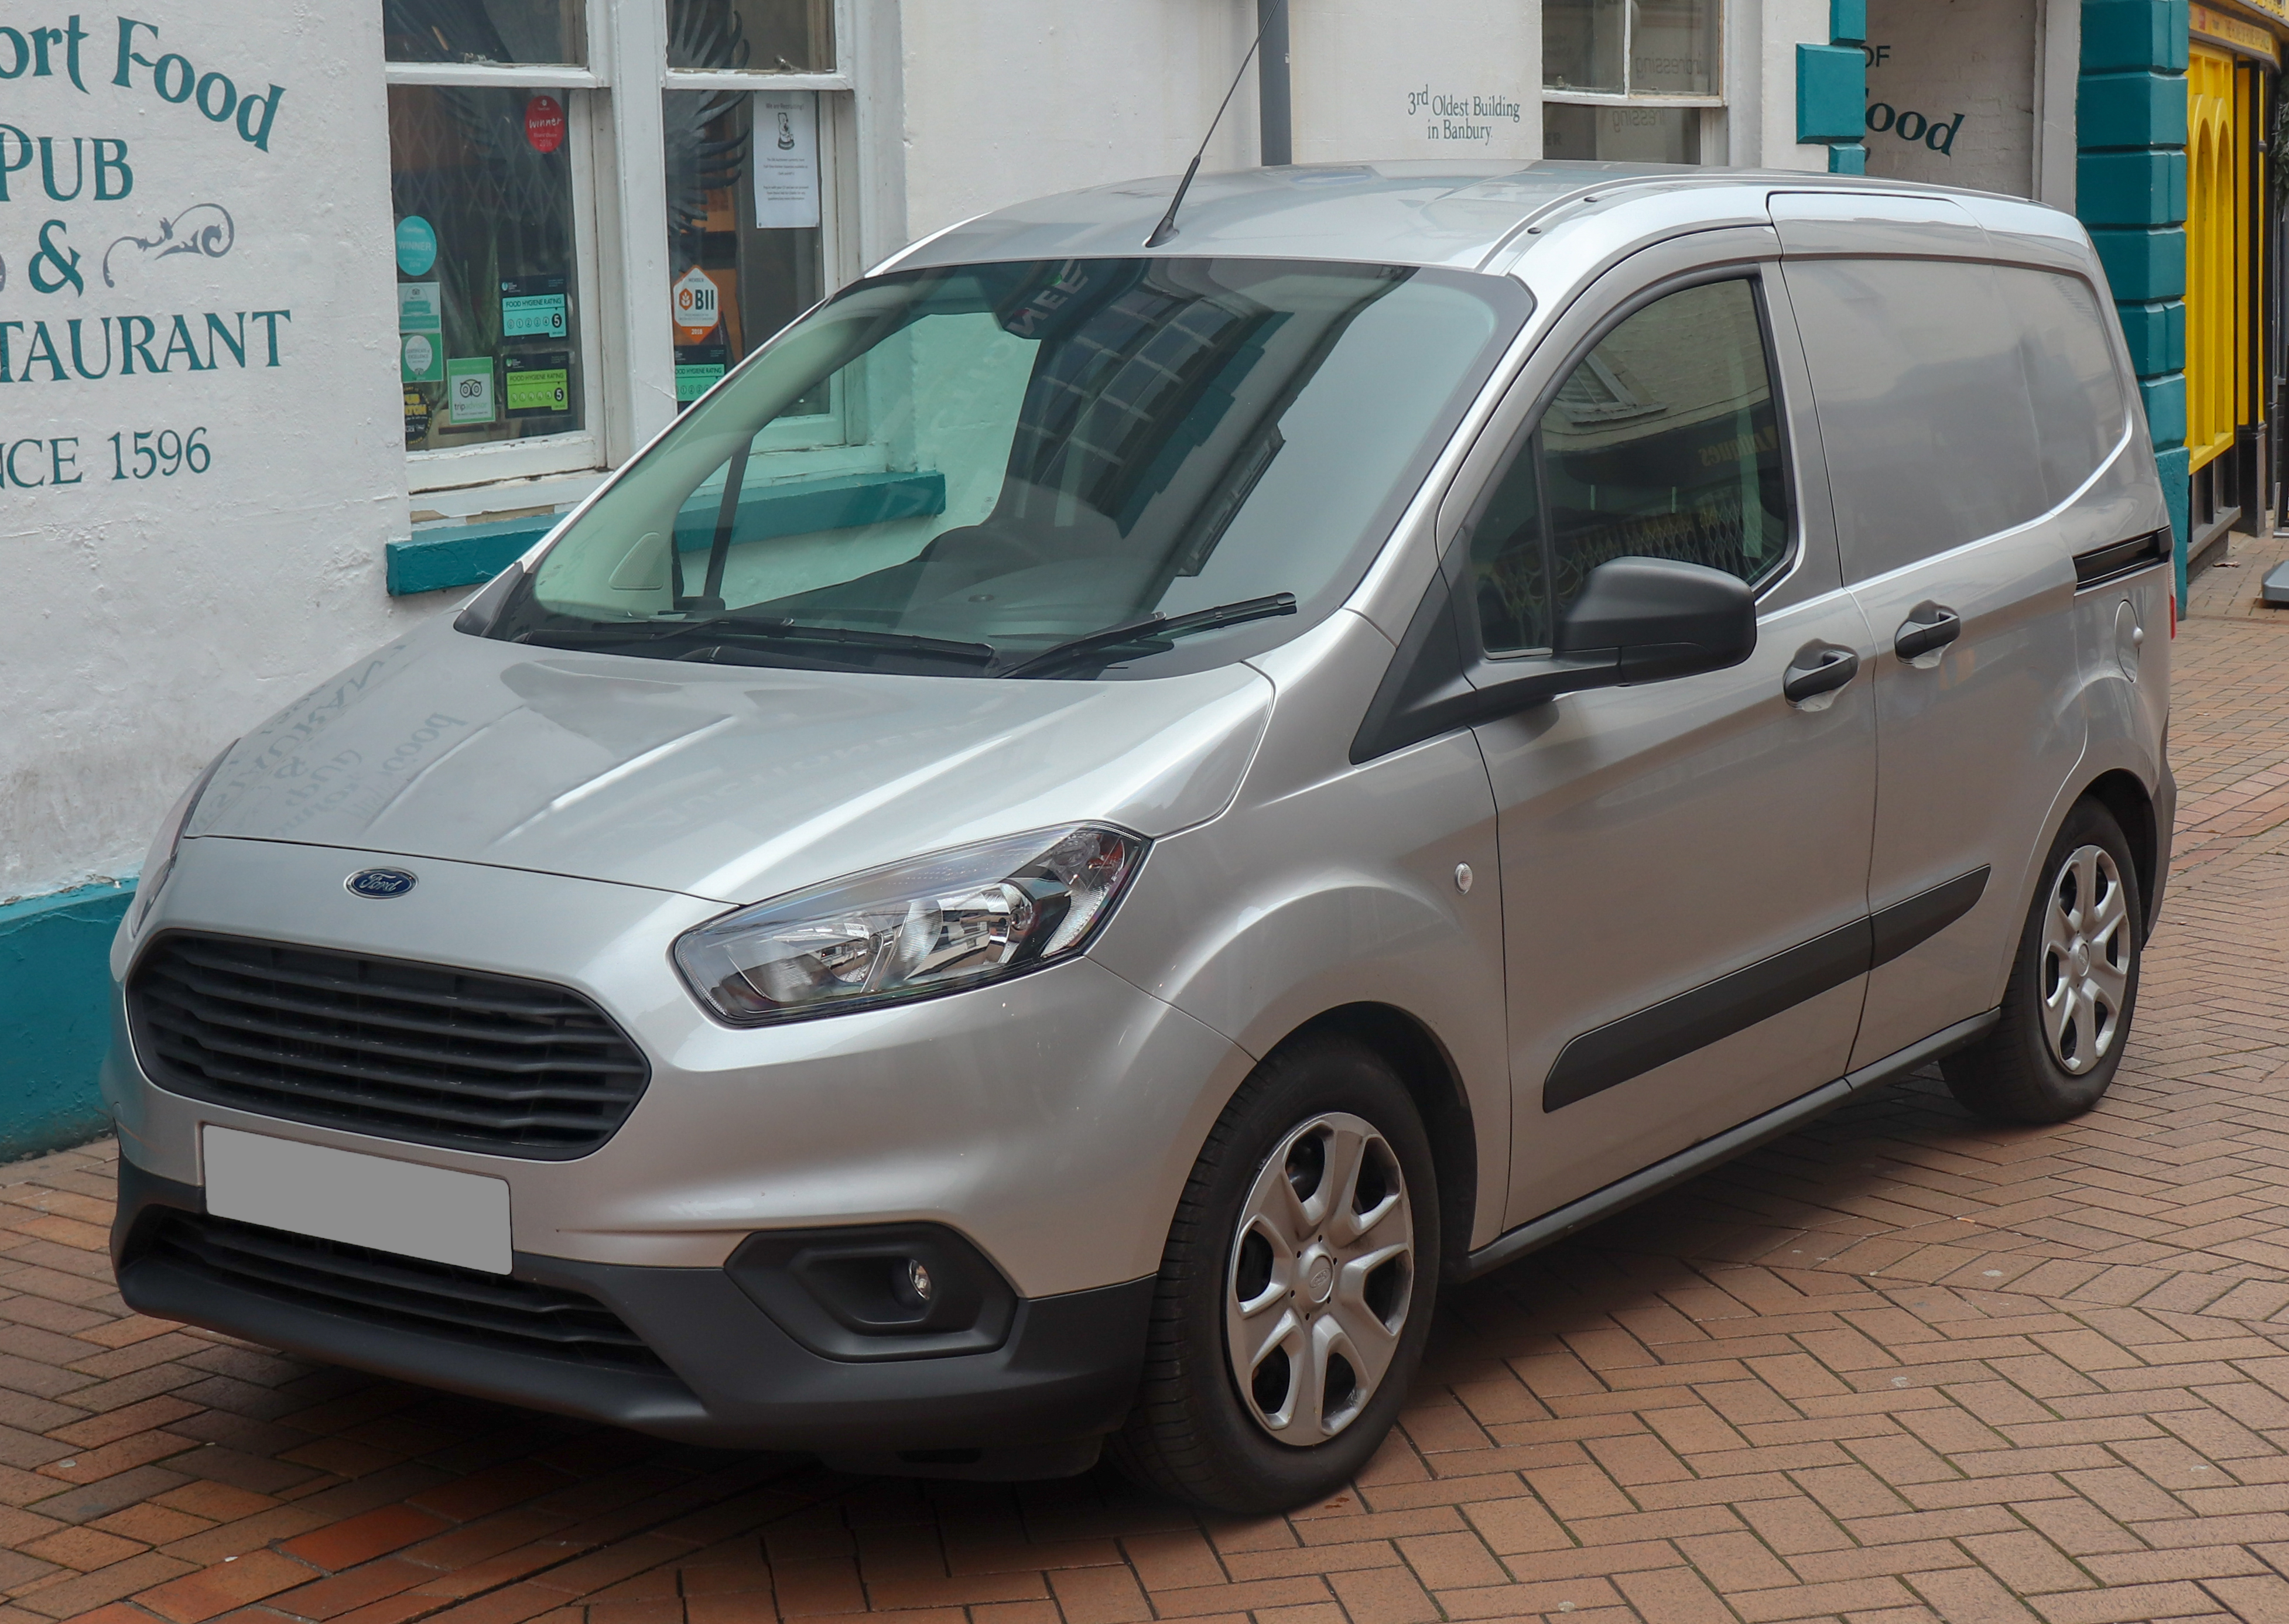 Ford Transit Courier - Wikipedia